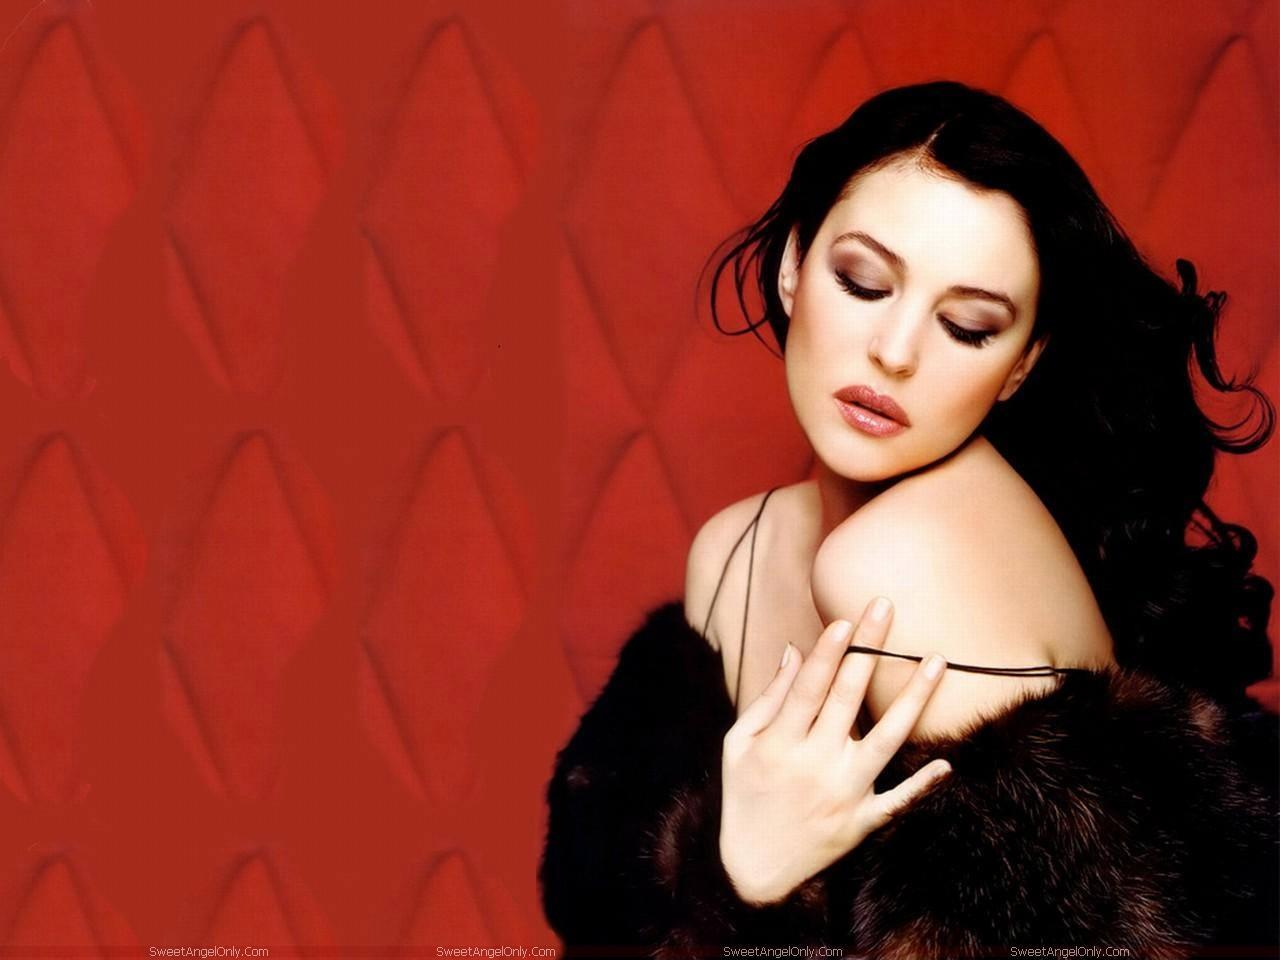 http://1.bp.blogspot.com/-kjNwWr-Ai-E/TaB3AdFVQXI/AAAAAAAAGNc/ryxChp_wh6o/s1600/monica_bellucci_wallpaper__looking_hot_sweetangelonly.jpg